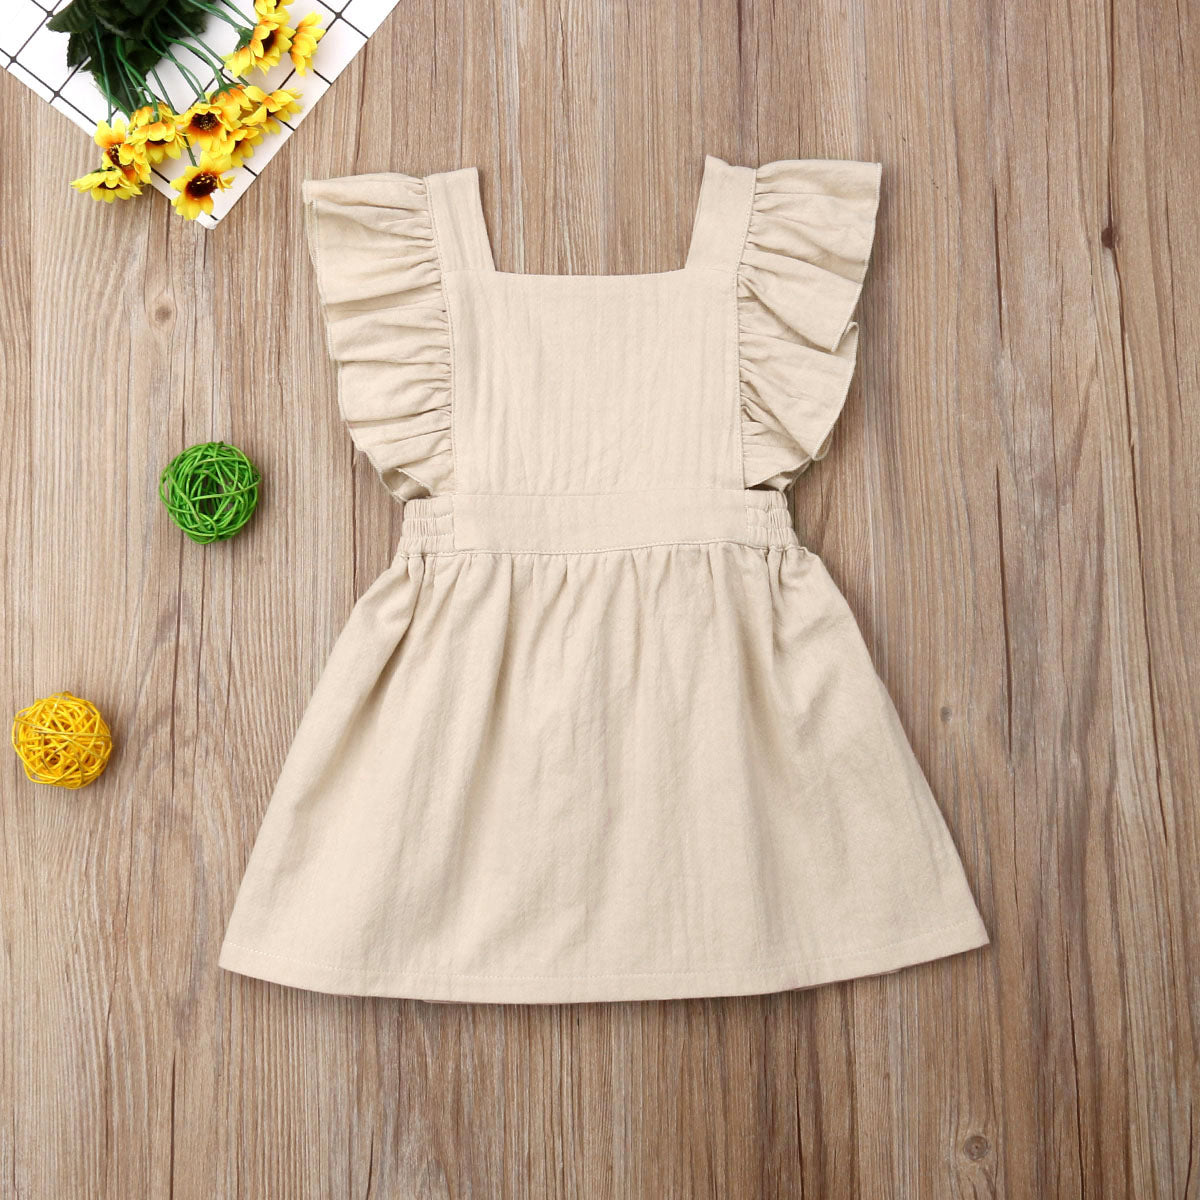 Naomi Baby Girl Cotton Sleeveless Solid Dress